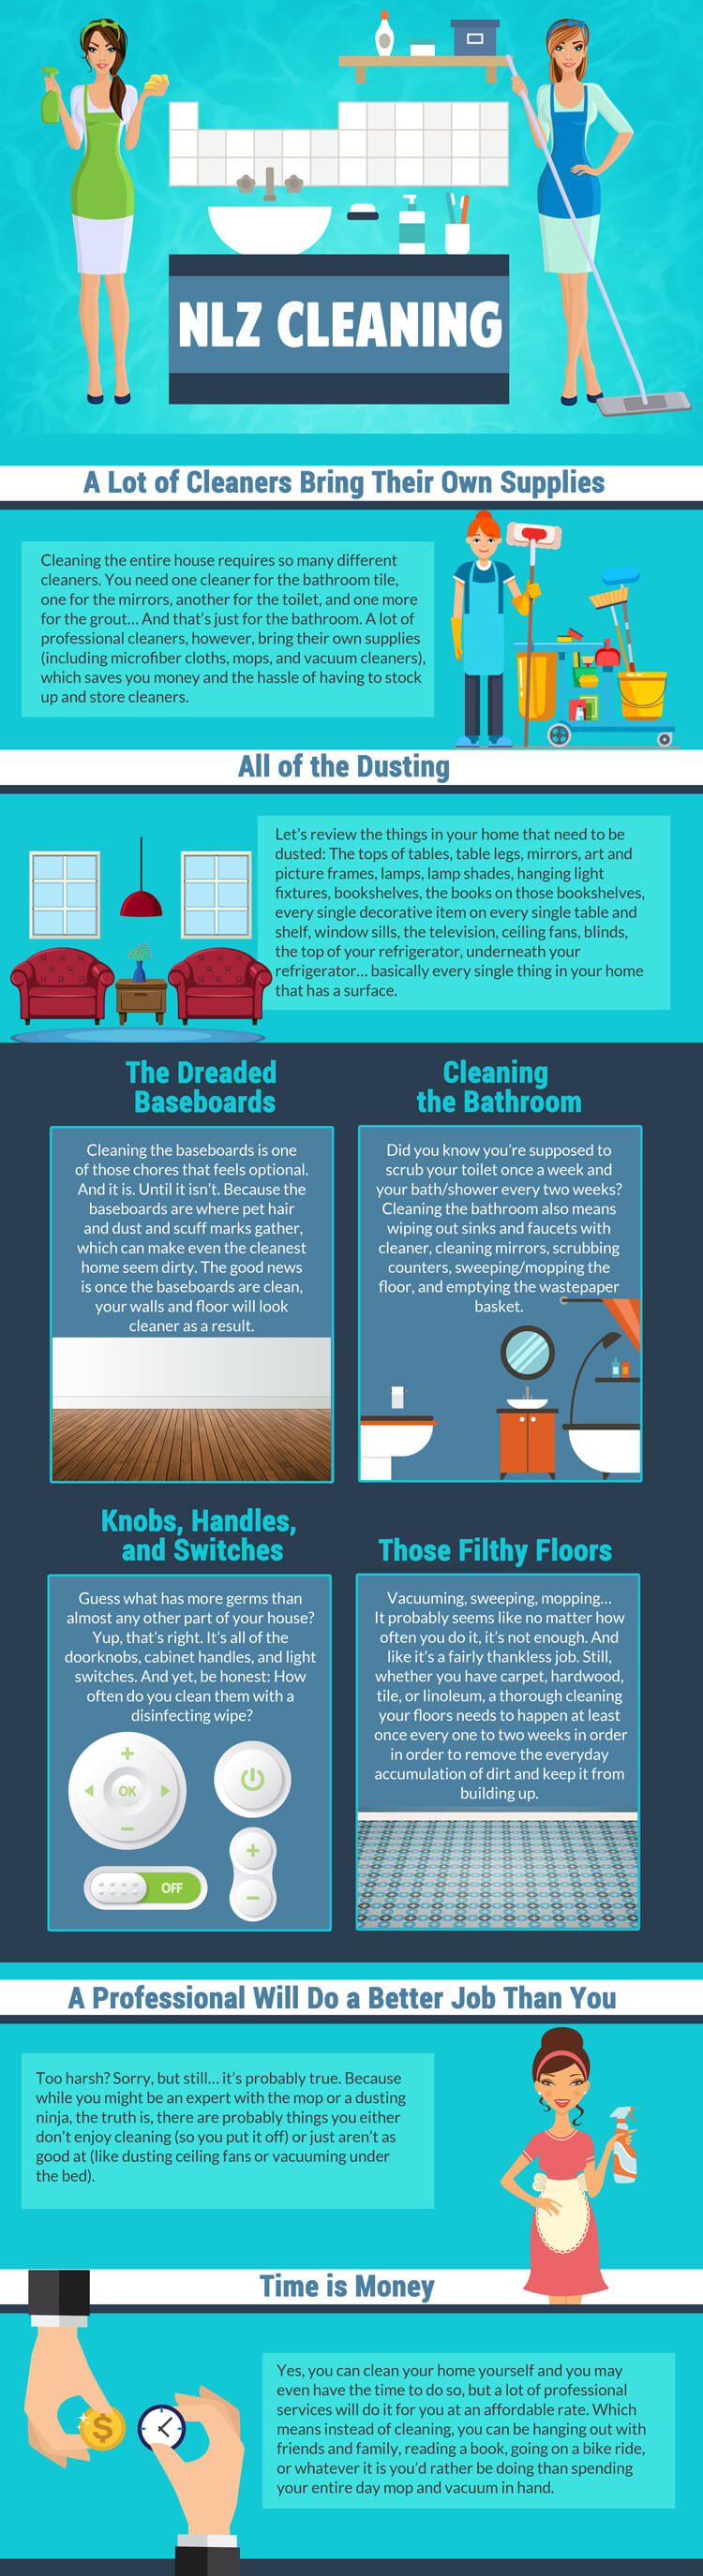 Know When It's Time To Hire A Professional Cleaner